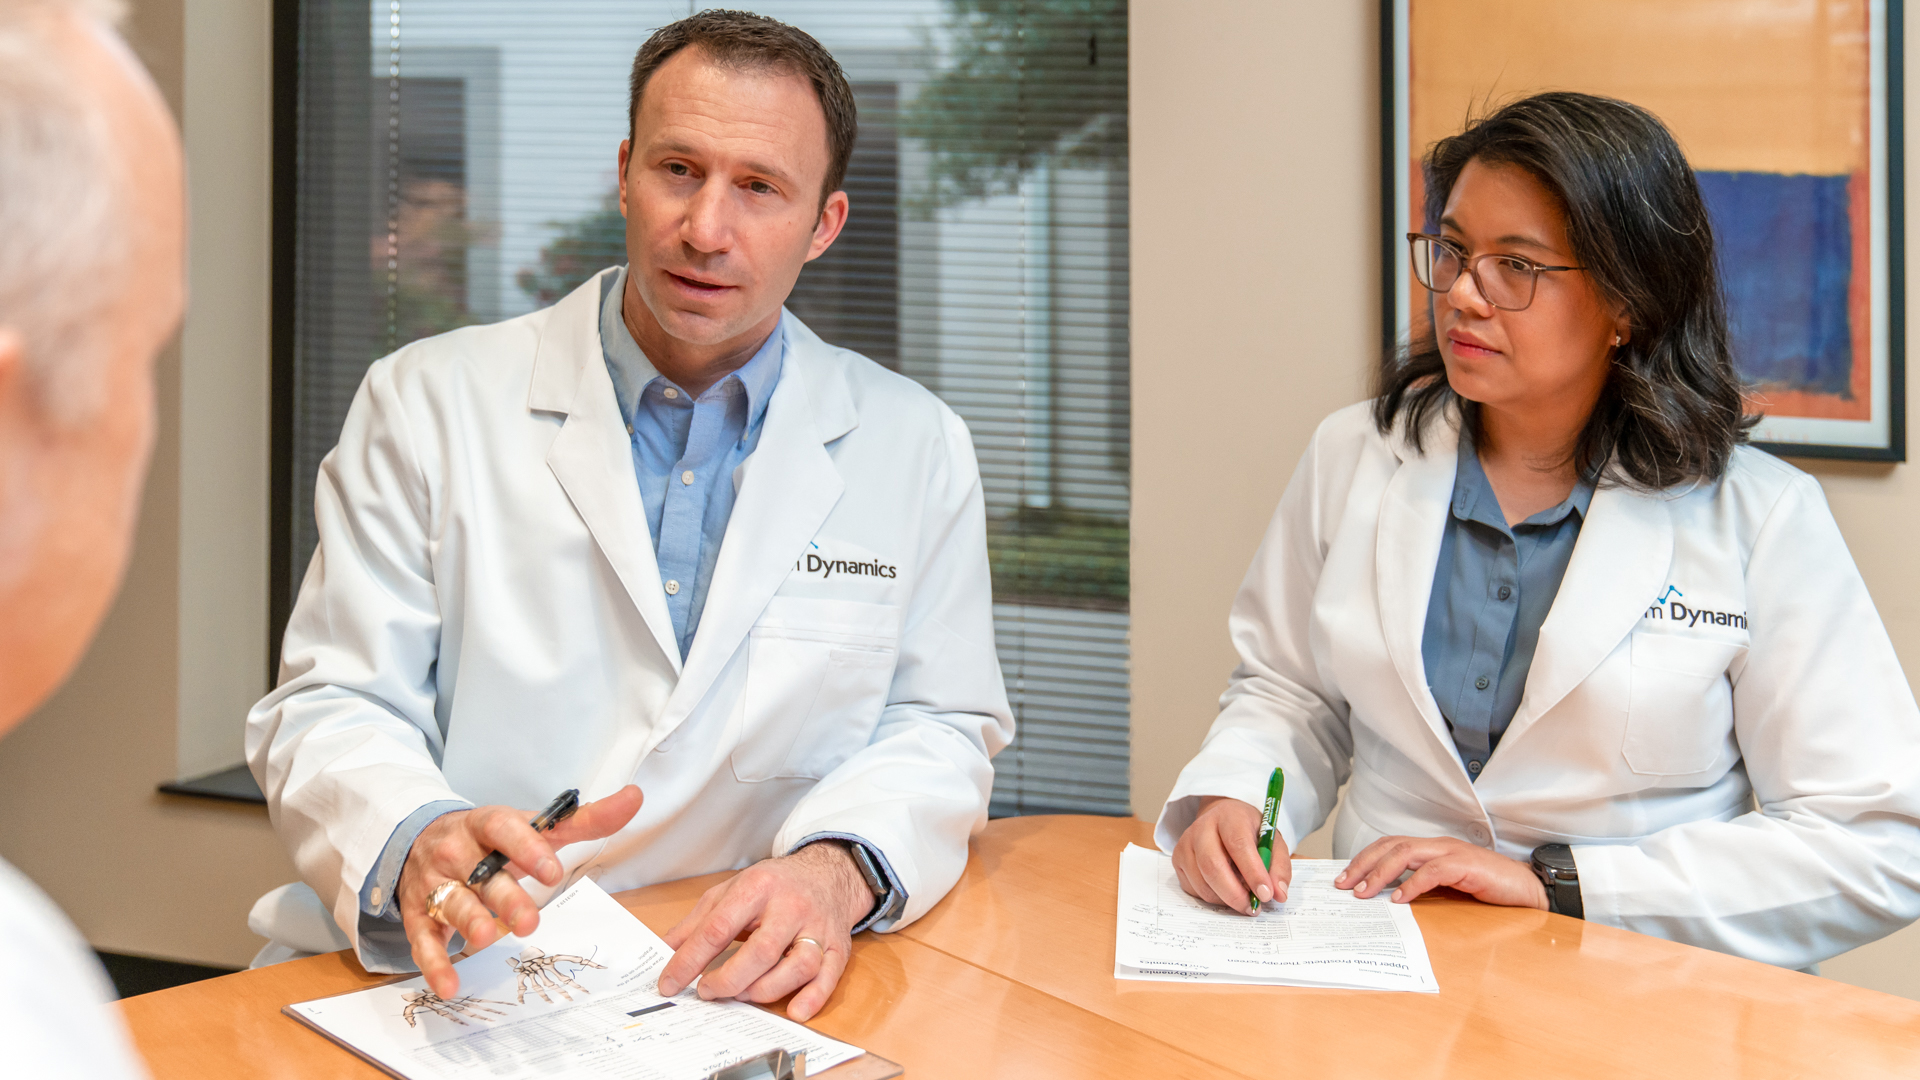 Prosthetist Rob Dodson and Therapist Carina Hill at a consultation meeting with burn patient